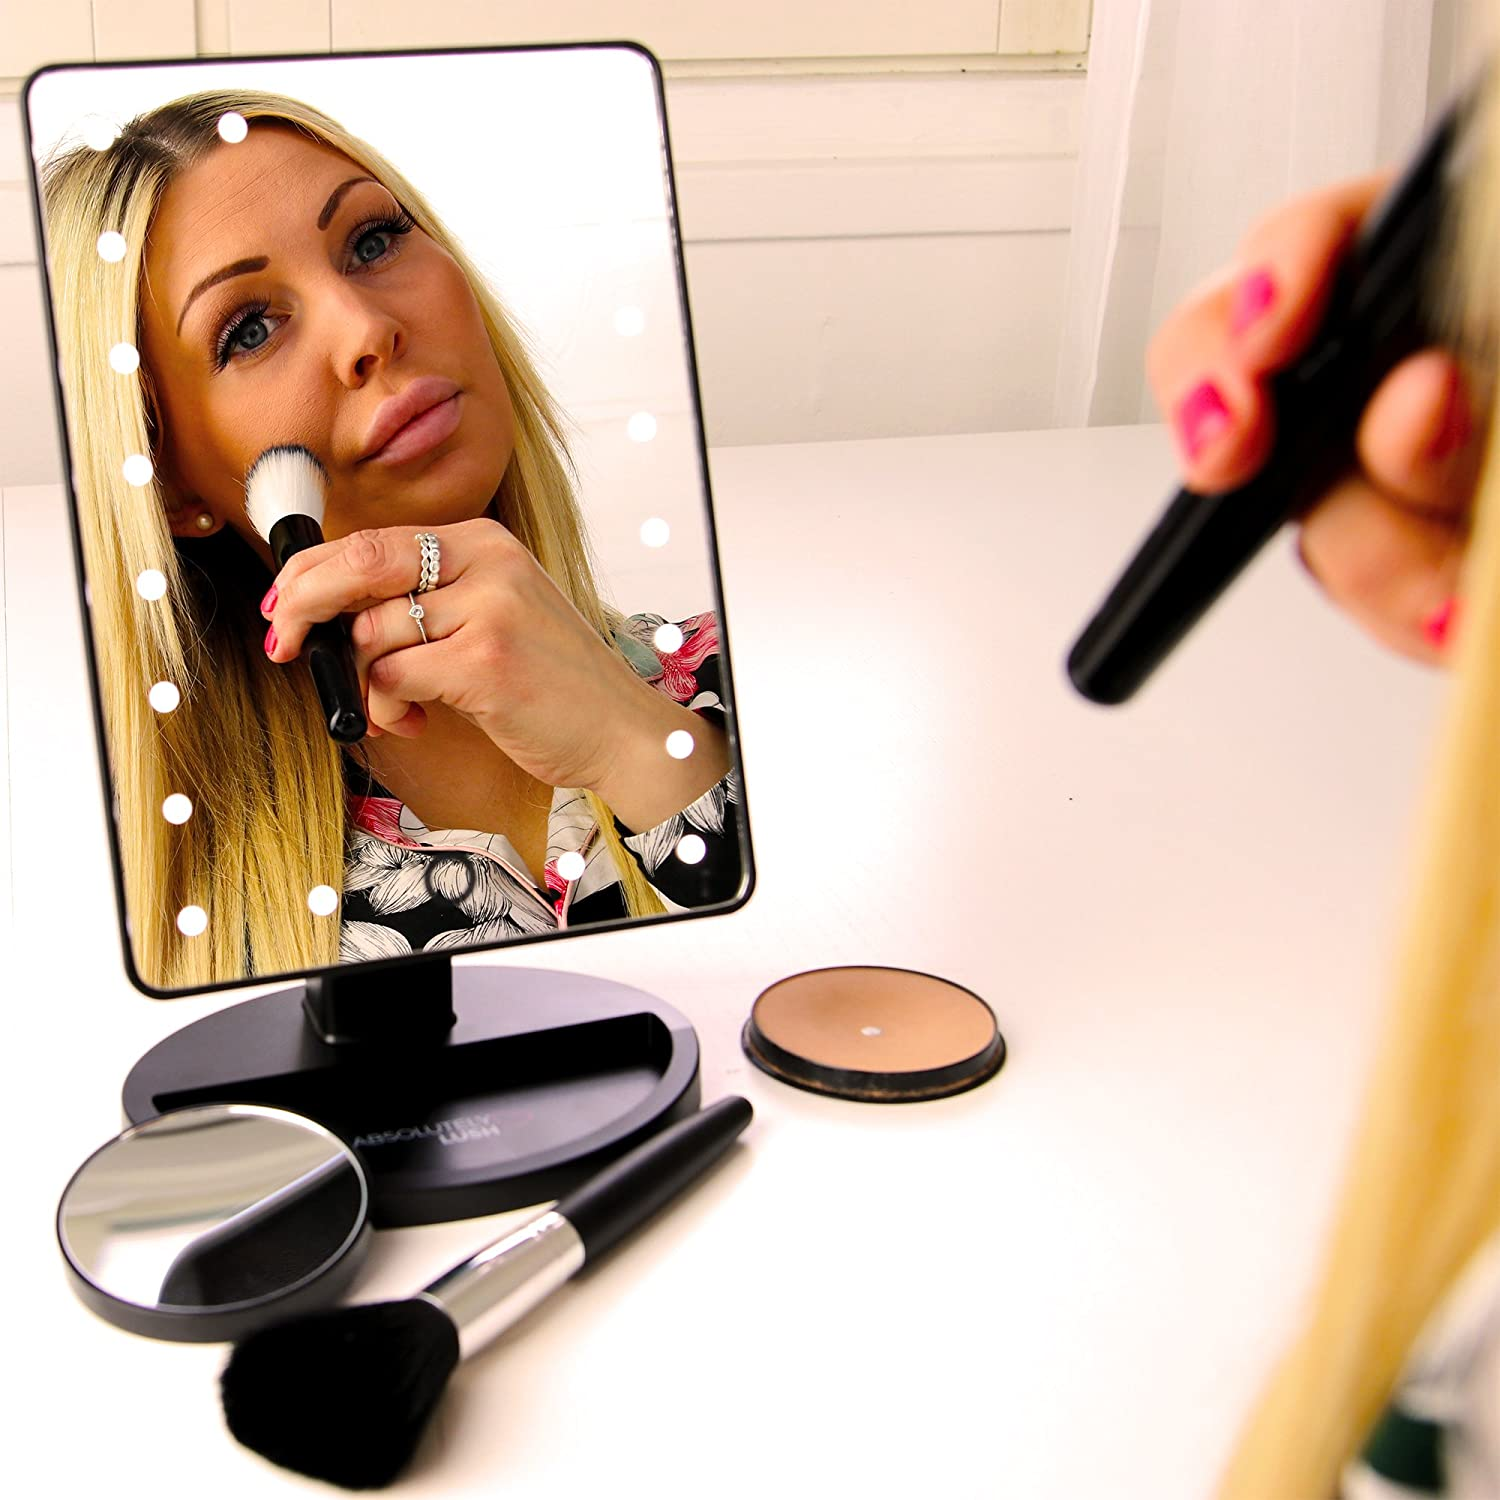 The 5 Best Makeup Mirrors In 2018: Compact, Lighted And Cordless 4